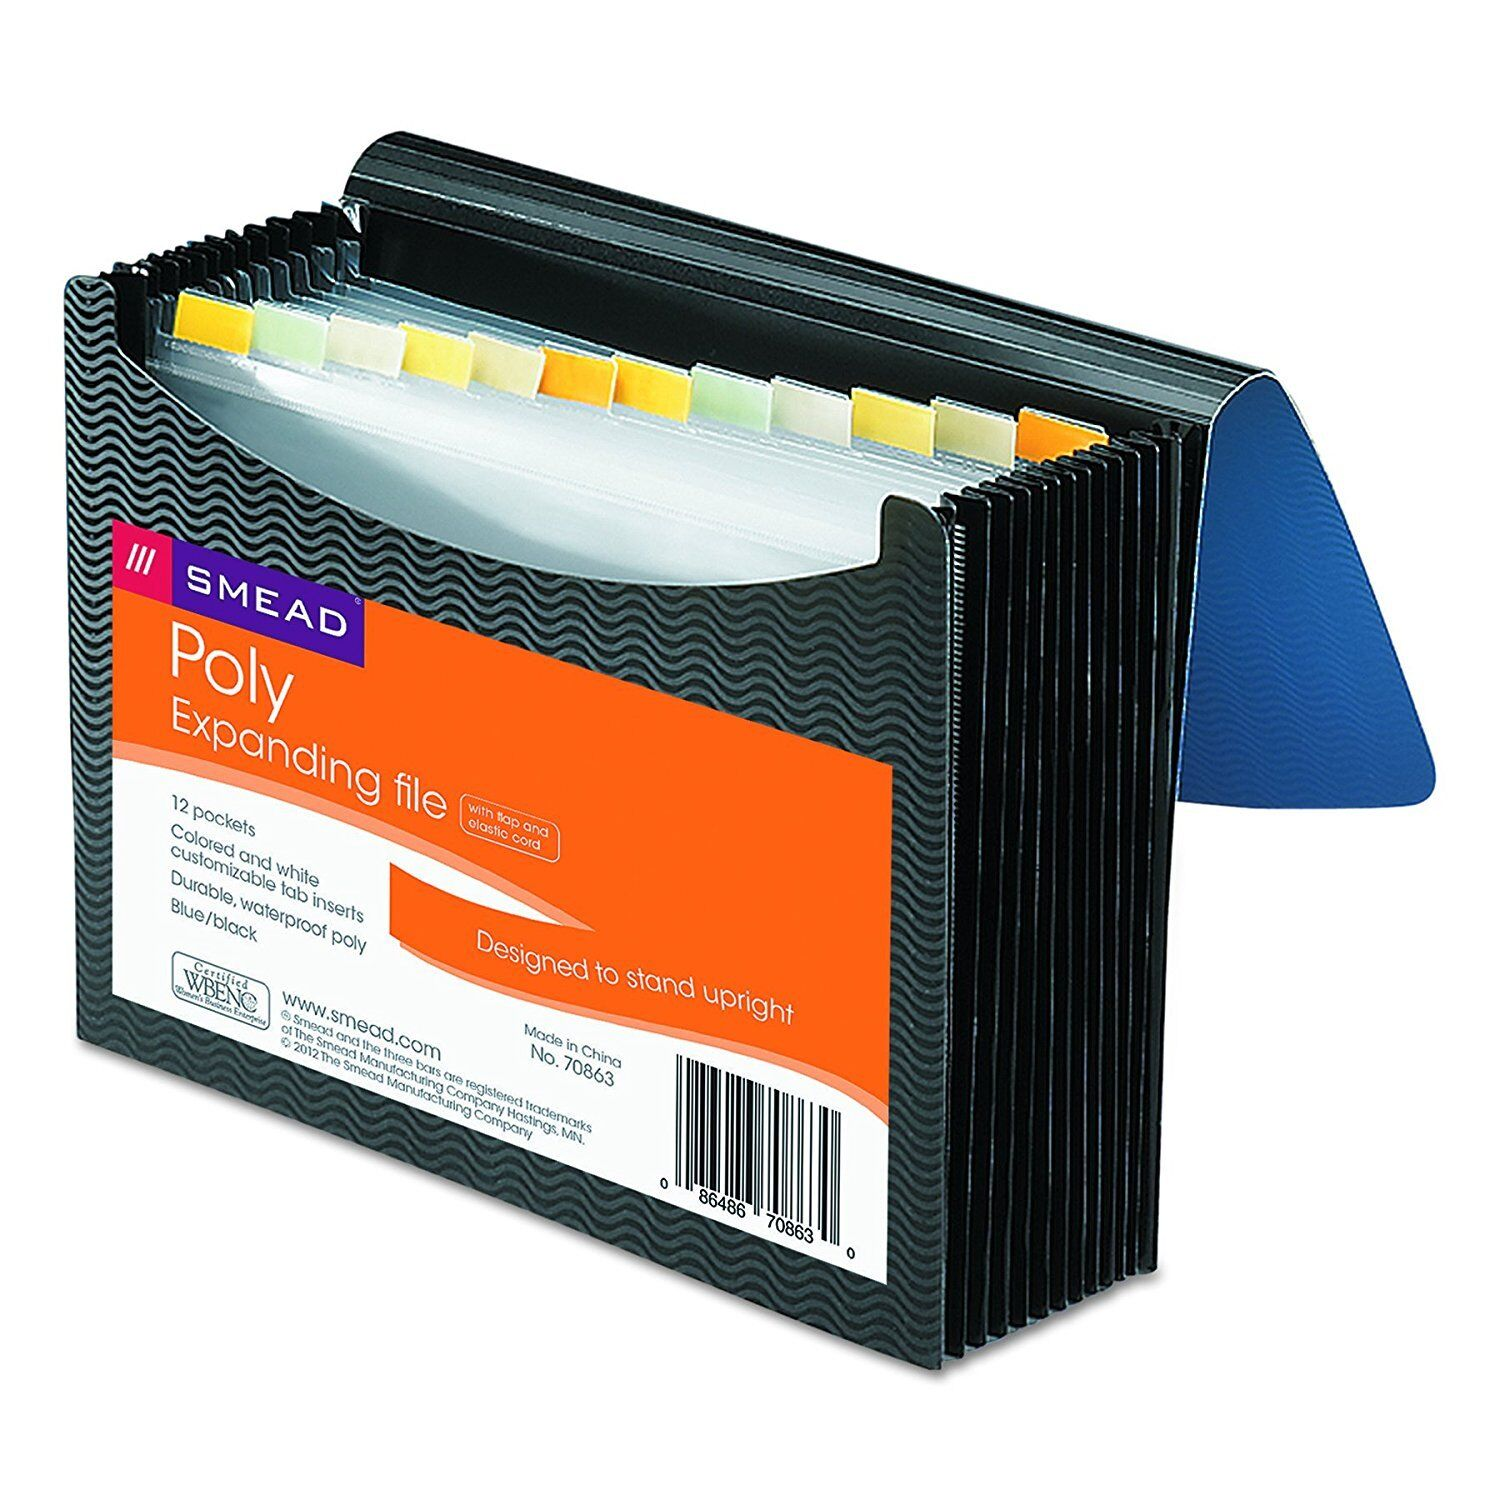 Smead Poly Frequency Expanding File, 12 Pockets, Flap and Co